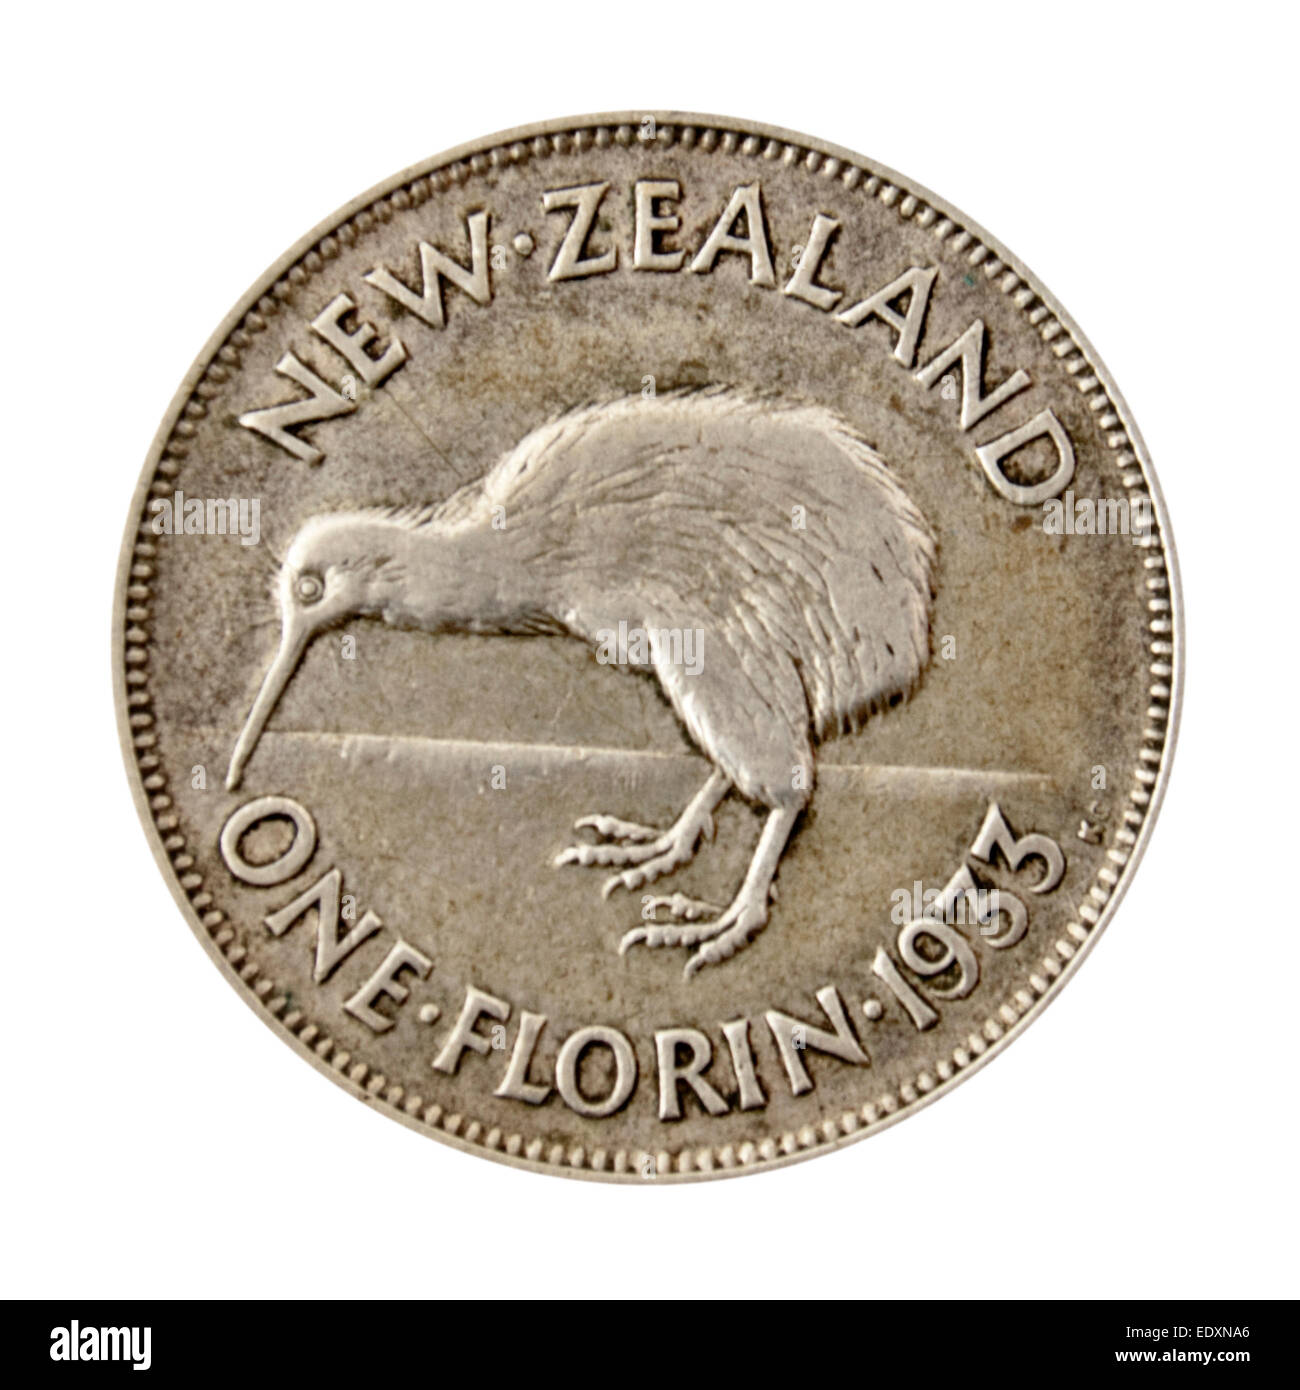 Vintage 1933 'One Florin' (2 Shillings) New Zealand coin, featuring the Kiwi bird on the reverse - Stock Image